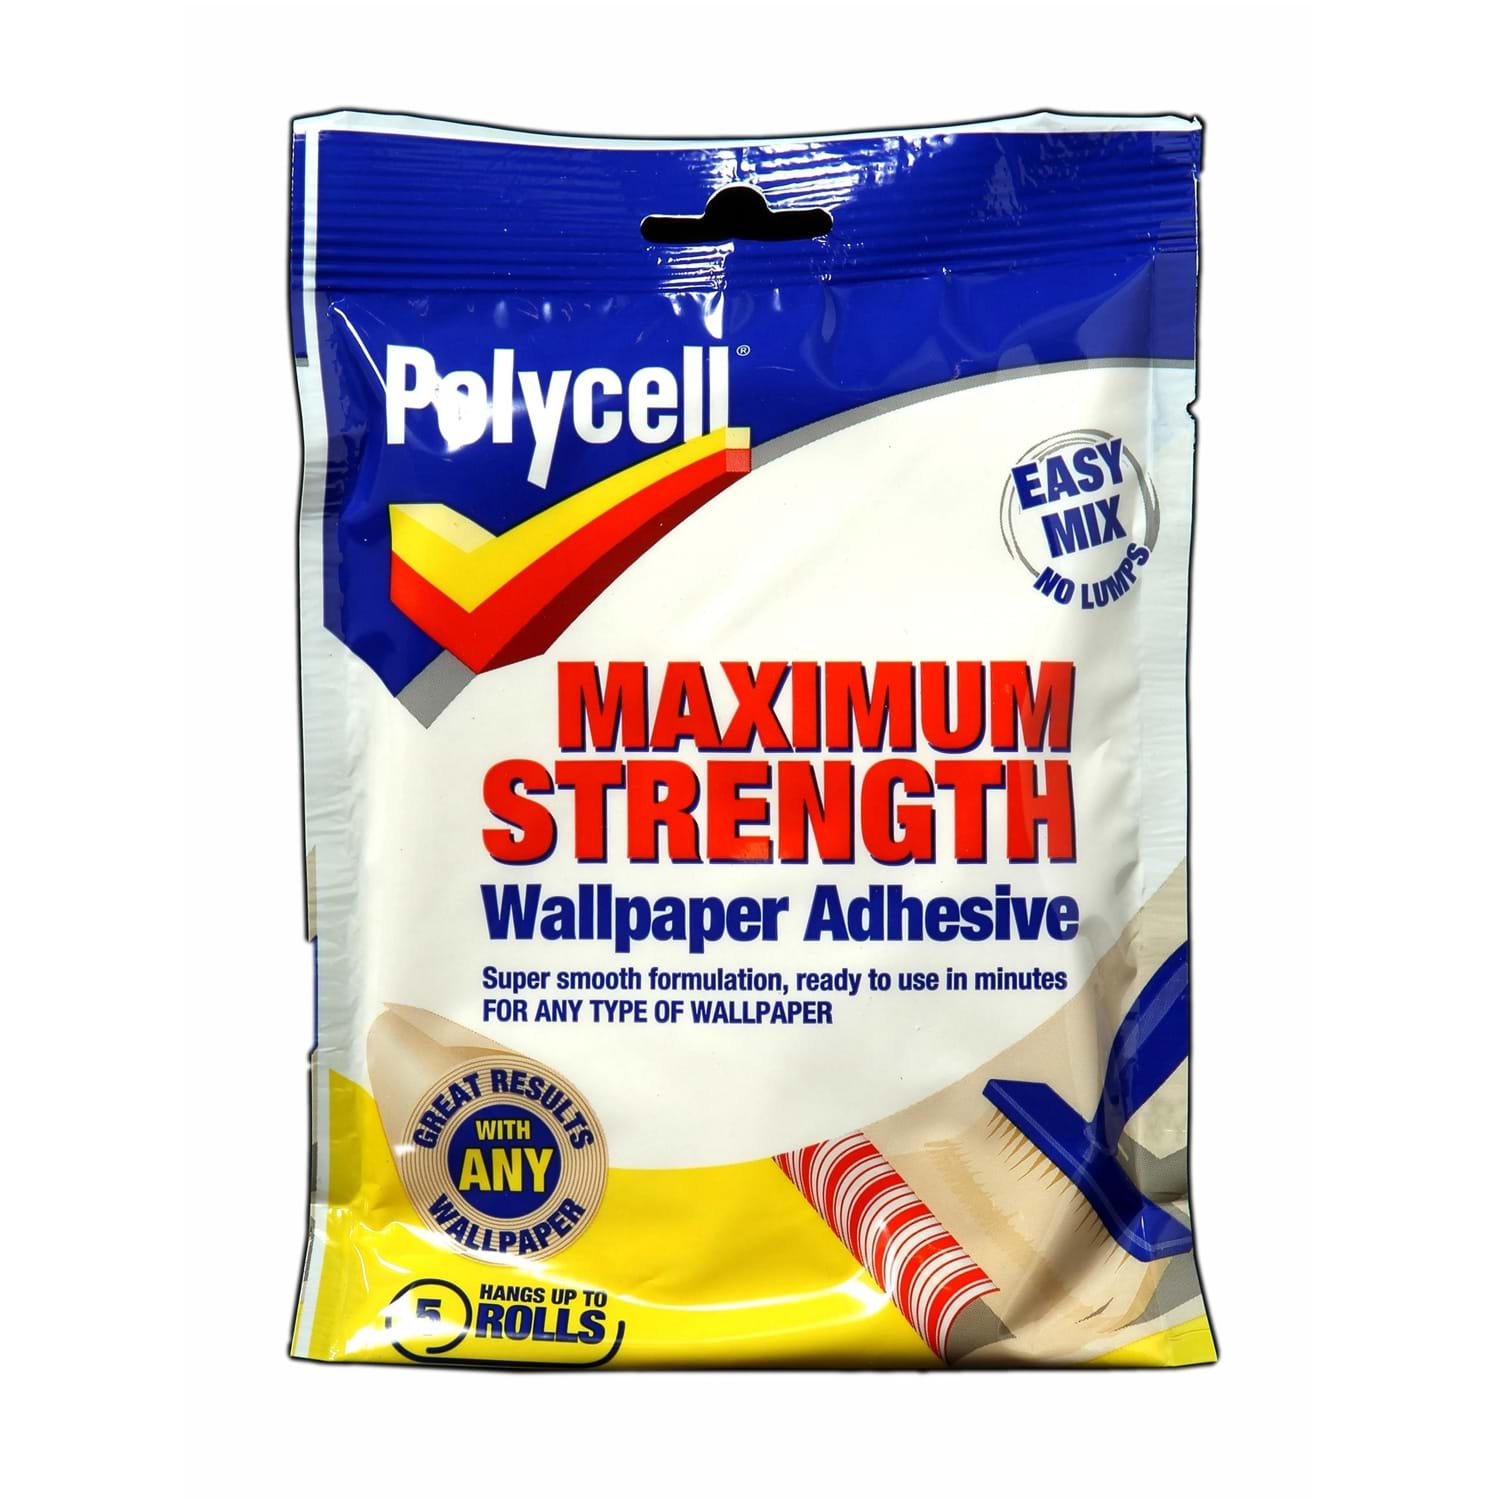 Image of Polycell 5 Roll Max Strength Wallpaper Adhesive